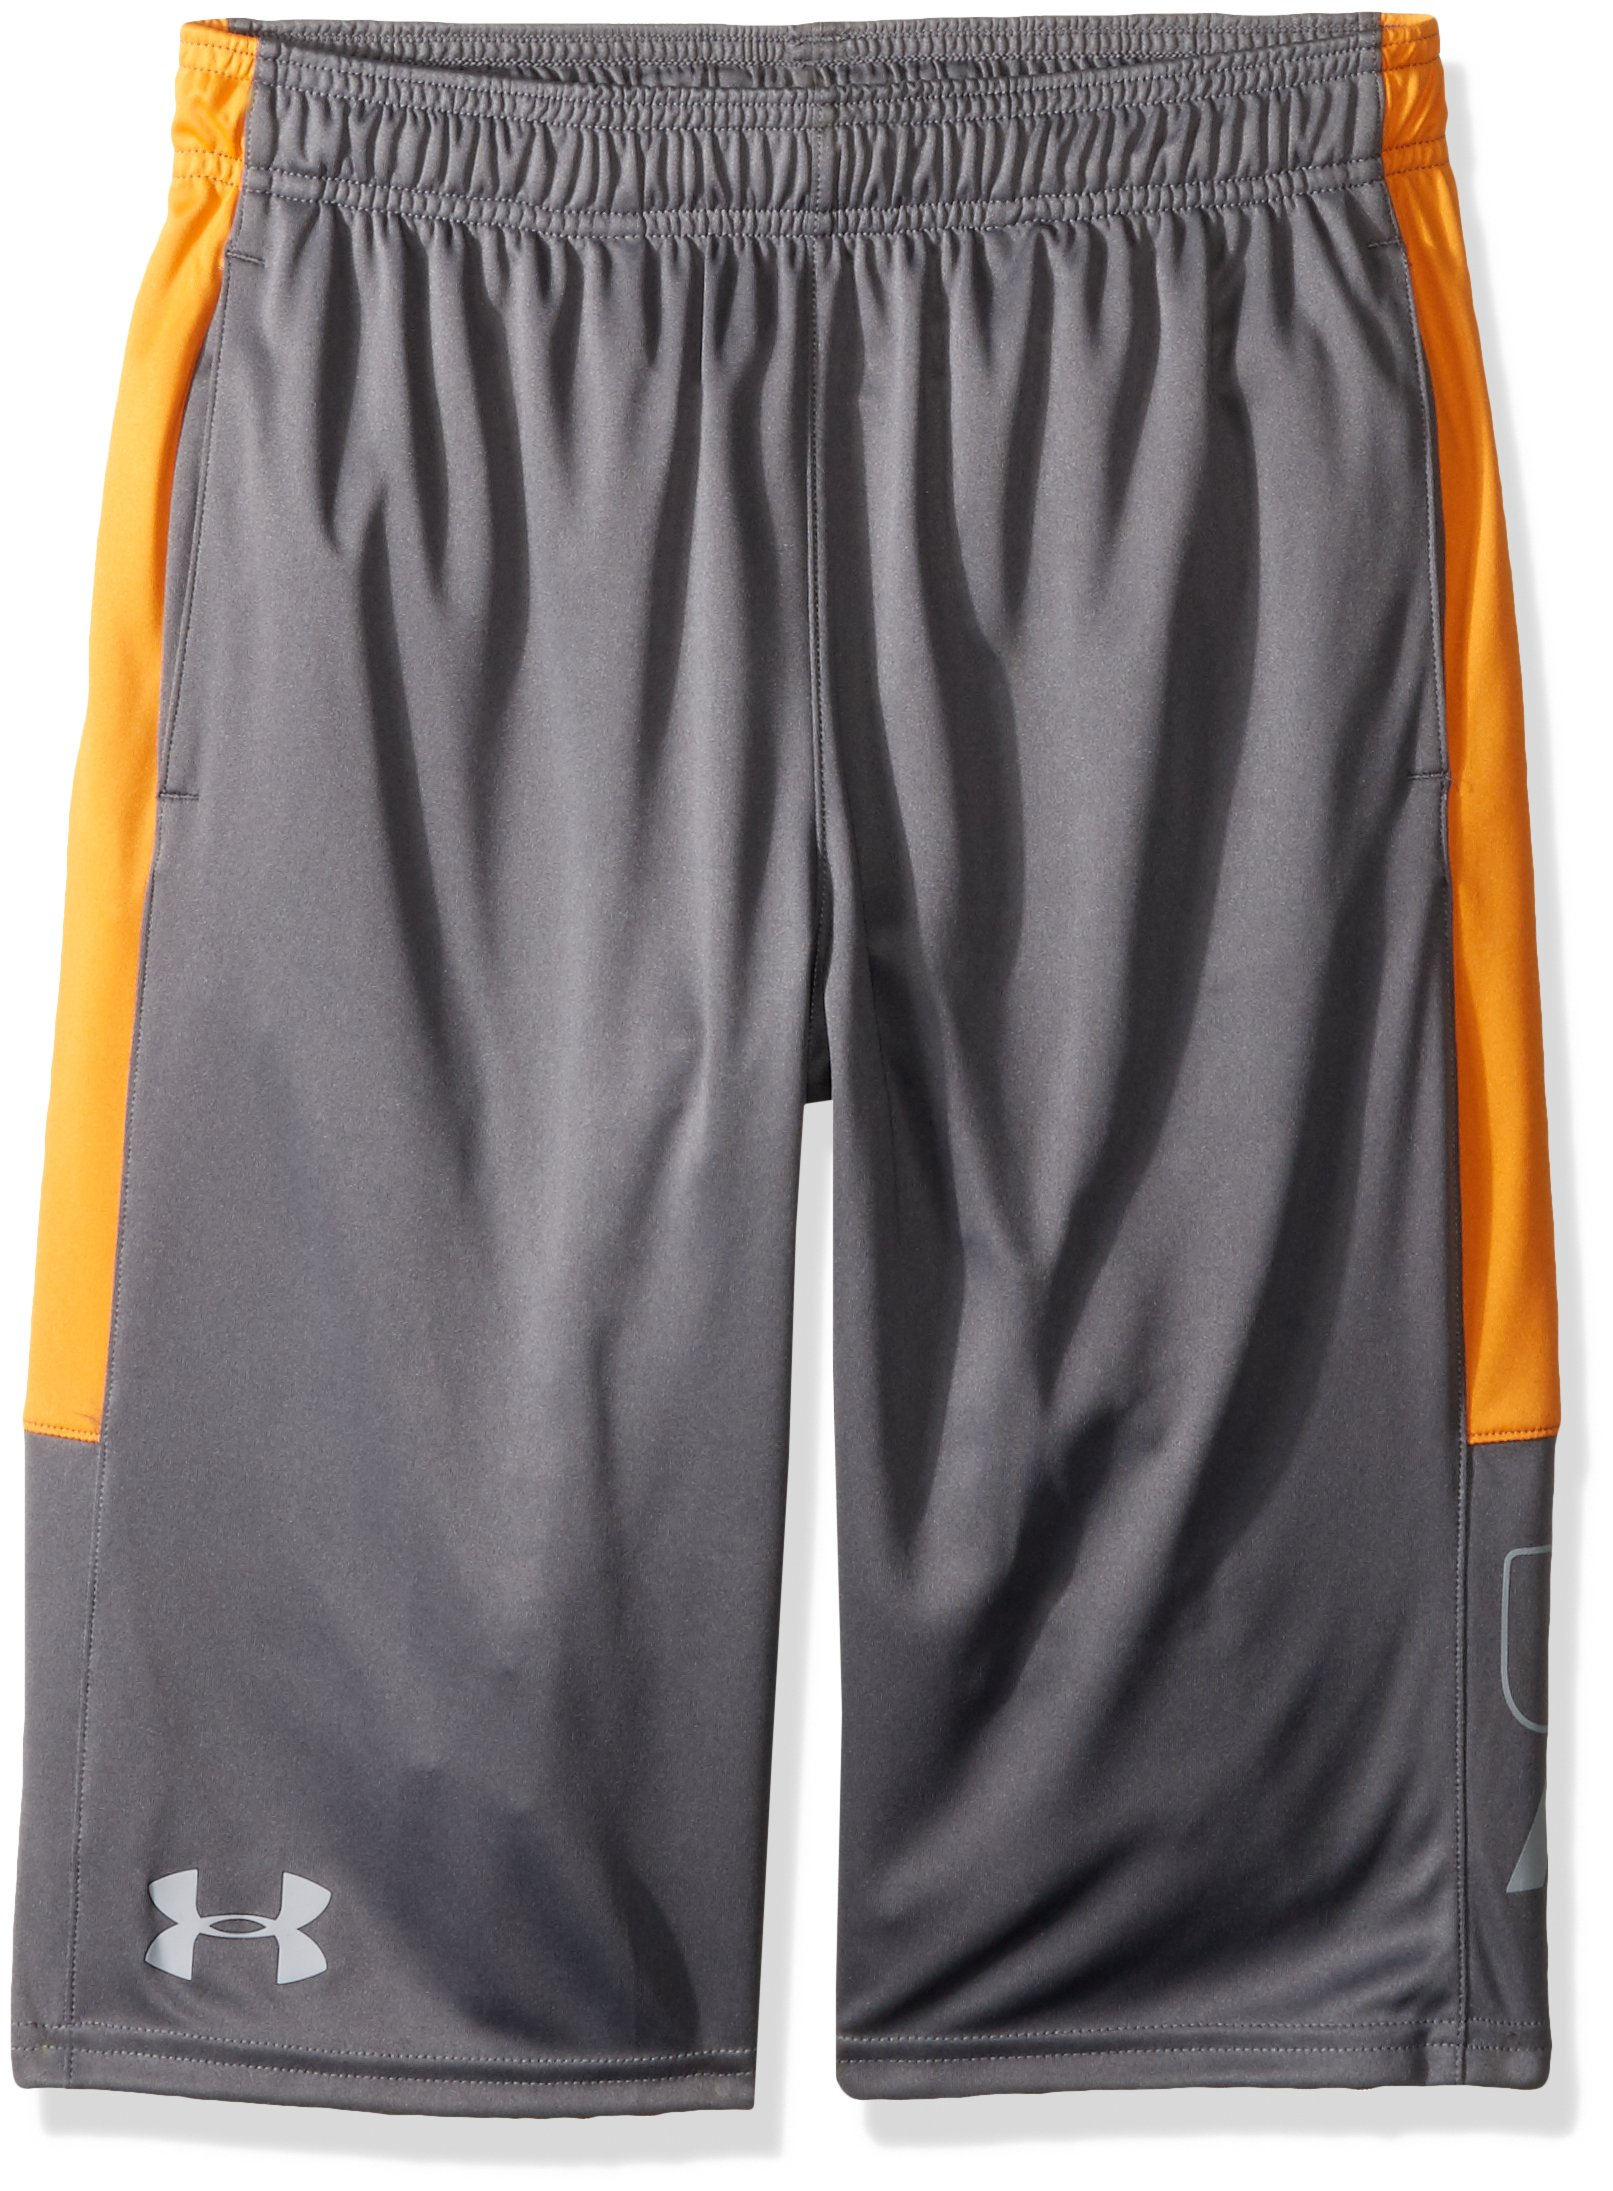 Under Armour Boys Instinct Shorts,Graphite /Overcast Gray Youth X-Large by Under Armour